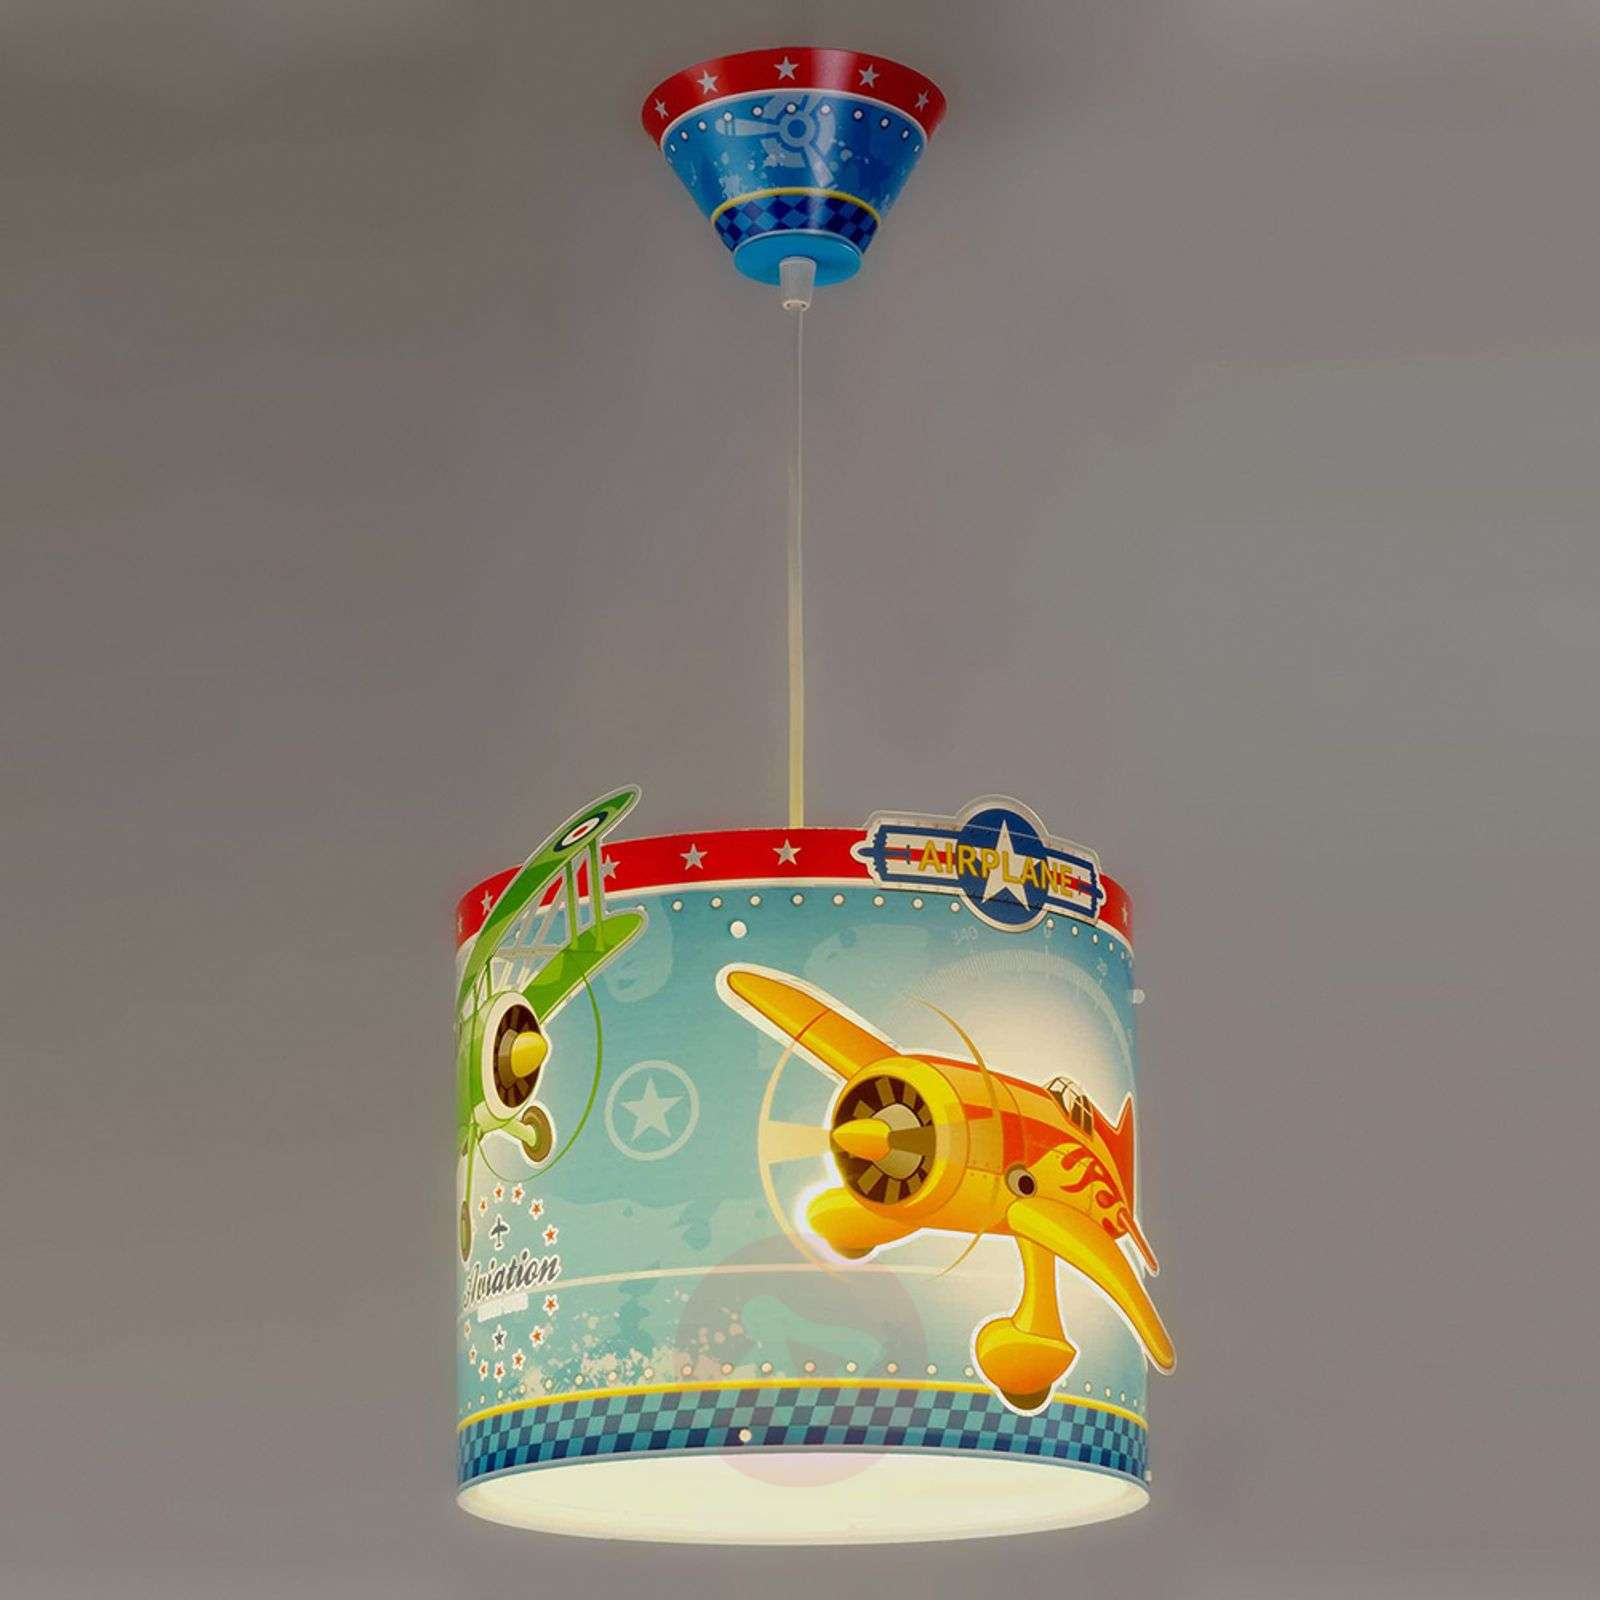 Airplane pendant light with airplanes-2507284-01